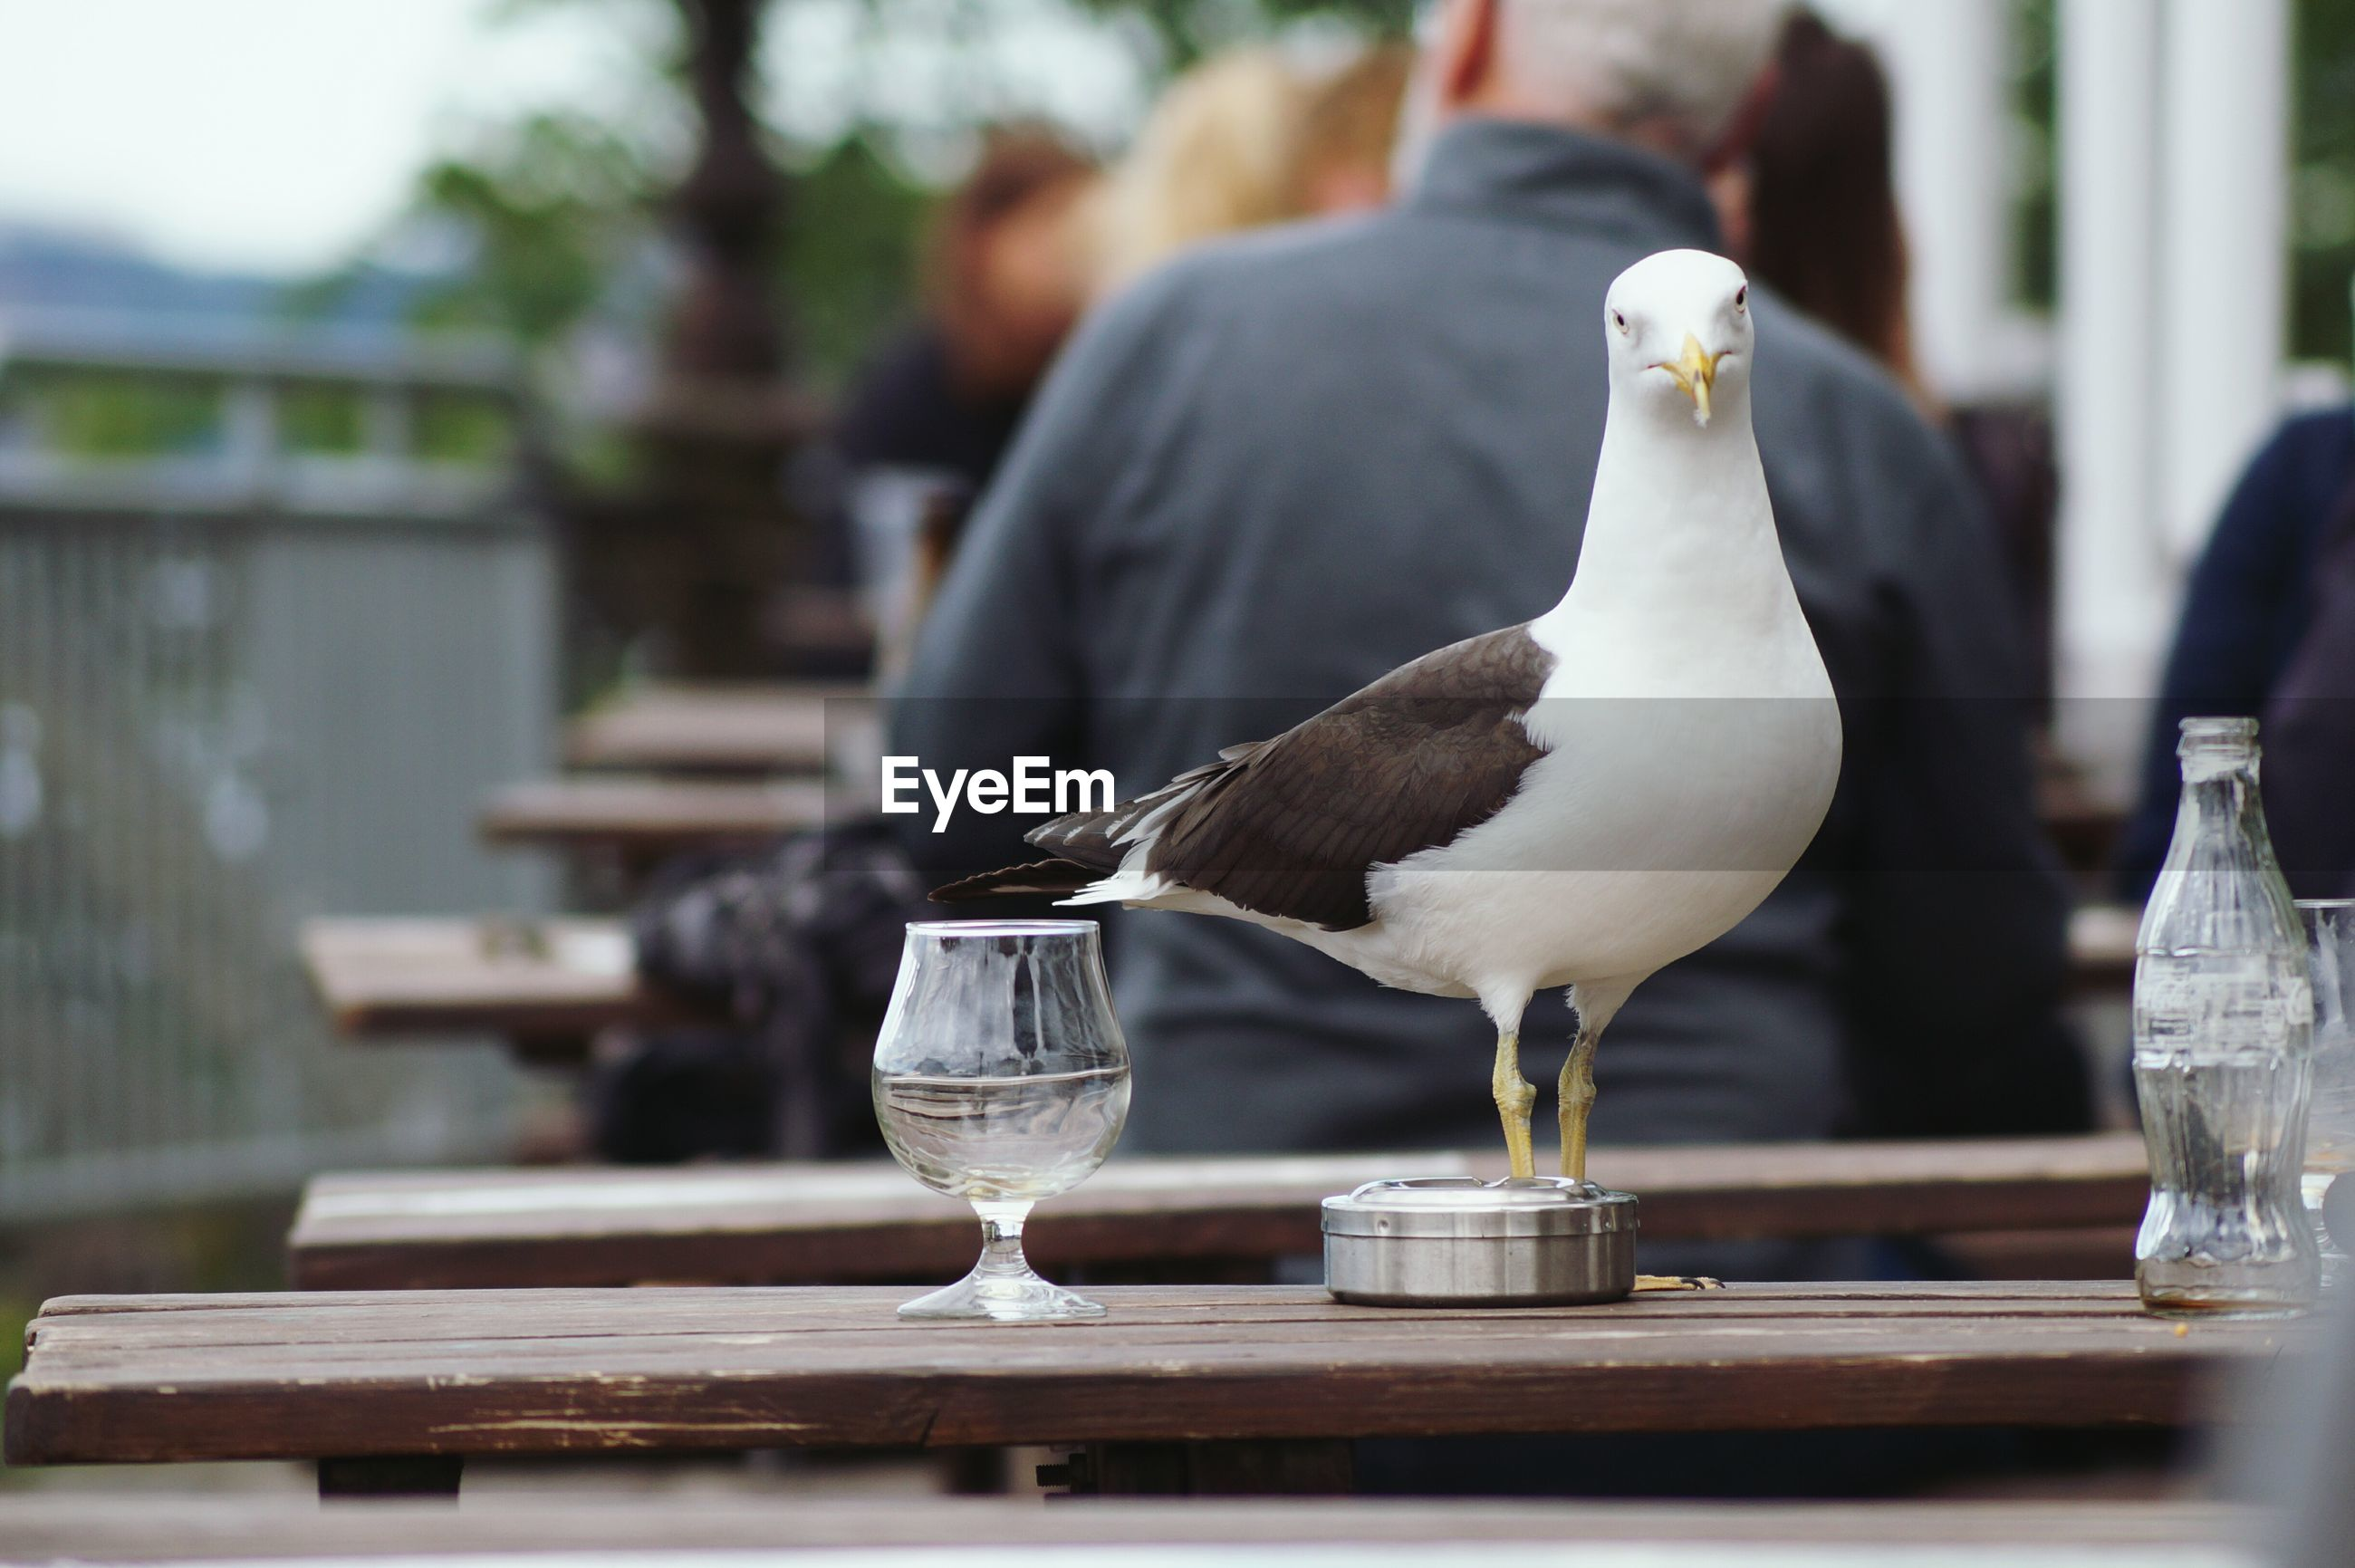 Seagull perching on table at restaurant